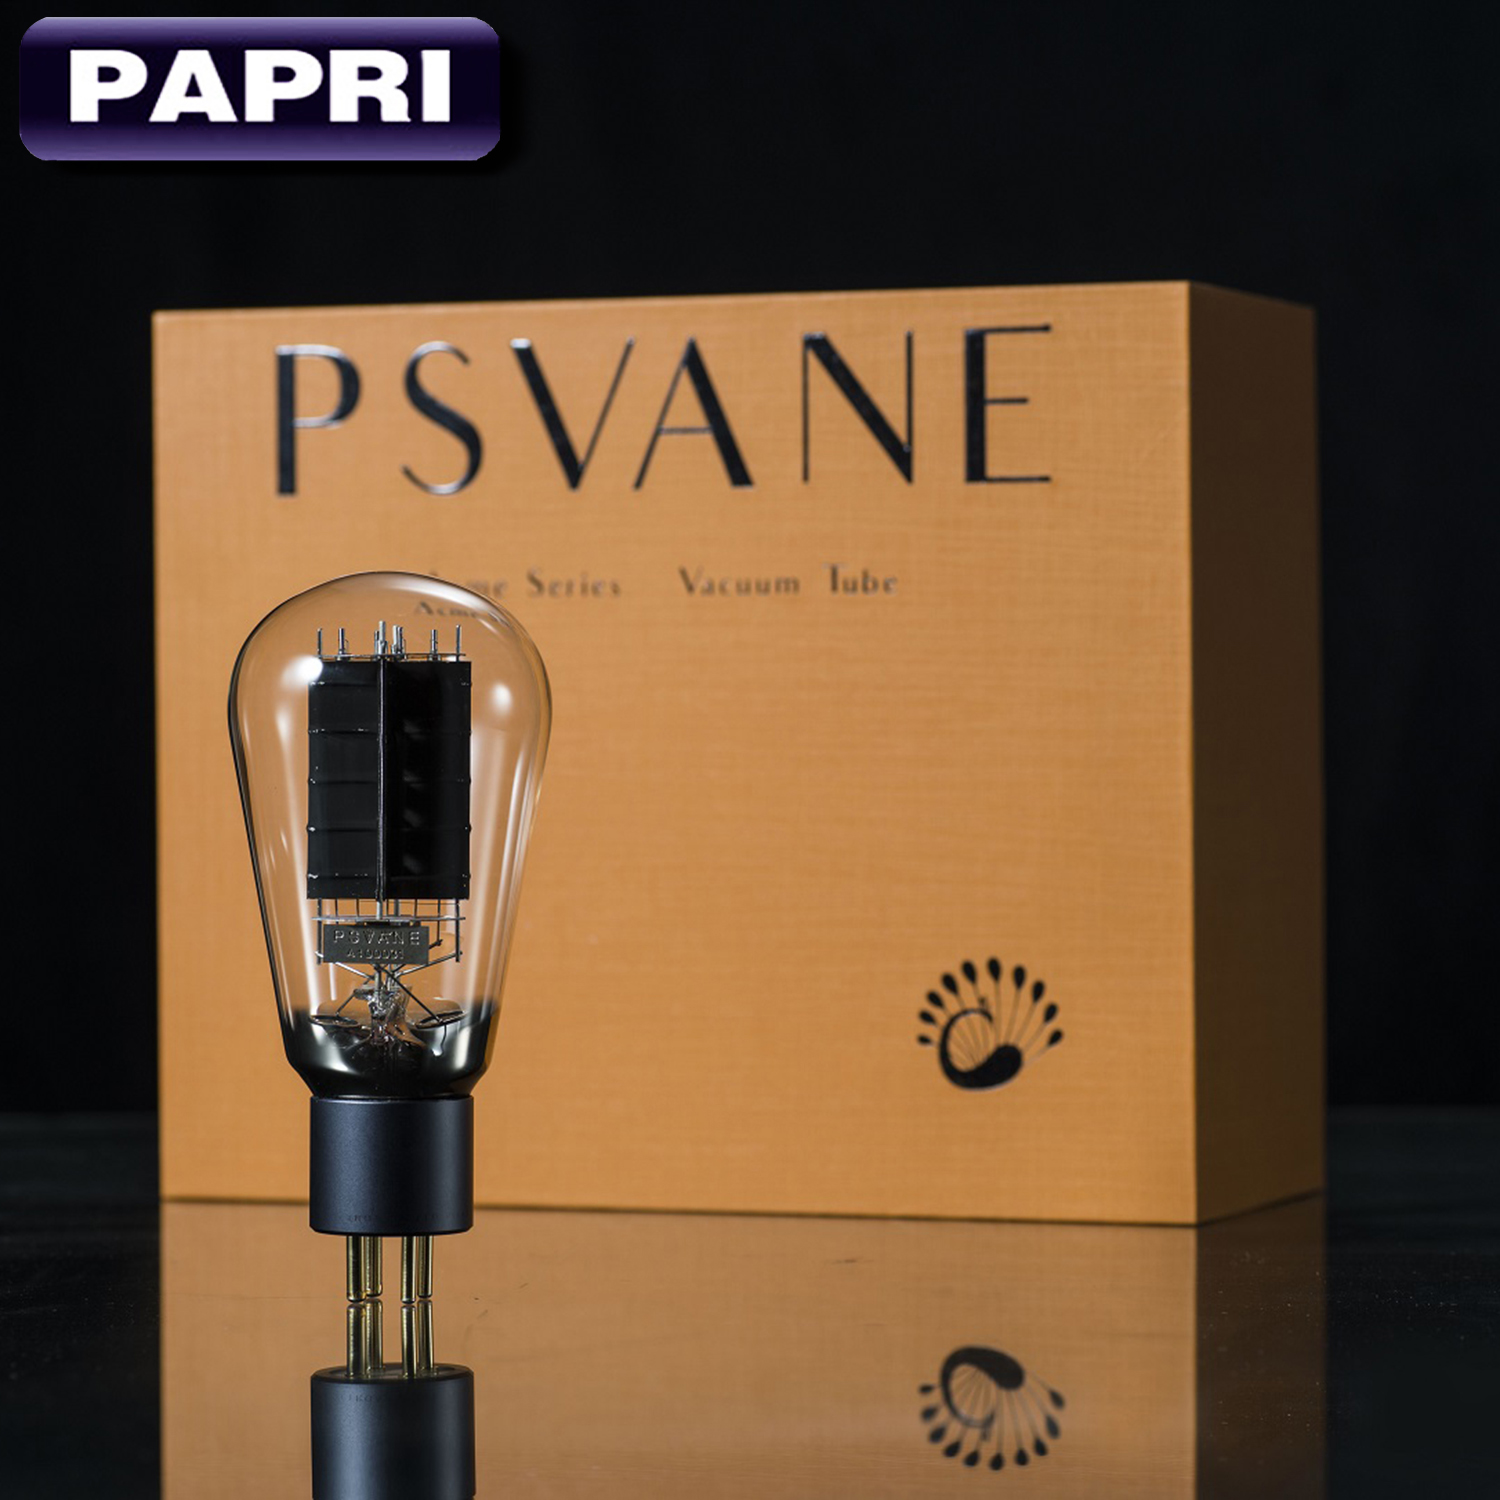 купить PAPRI Newest 2PCS Psvane Acme 300B Vacuum Tube Treasure For Audio HIFI DIY Guitar Tube Amplifier Matched Pair по цене 63039.21 рублей